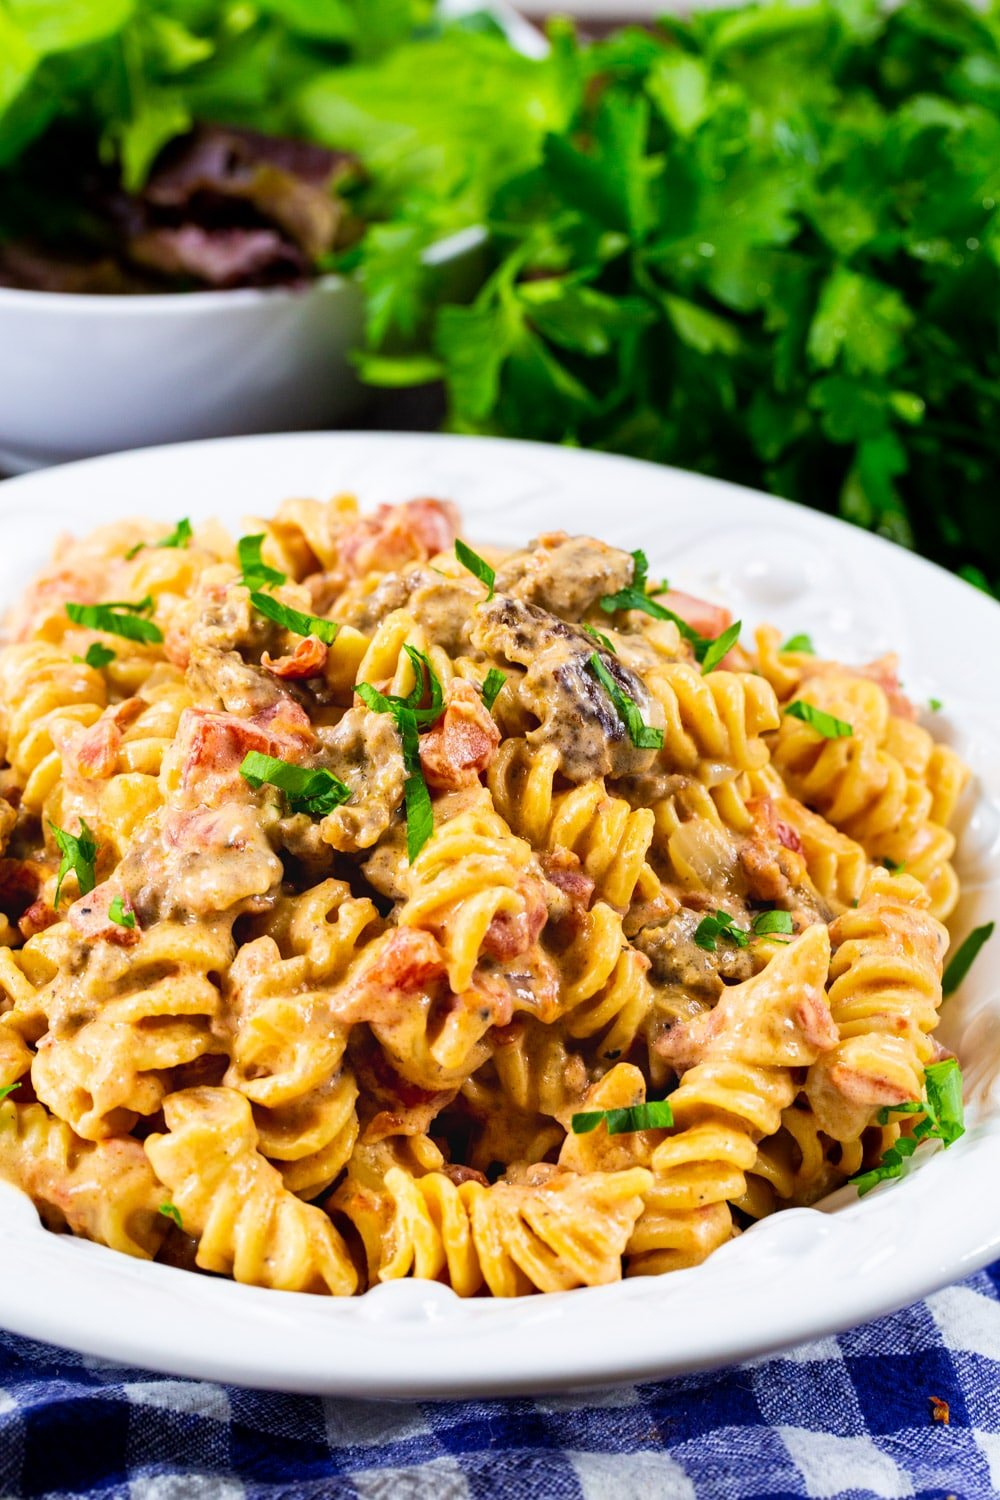 Creamy Pasta wit Rotel Tomatoes and Sausage in a white bowl with parsley in background.